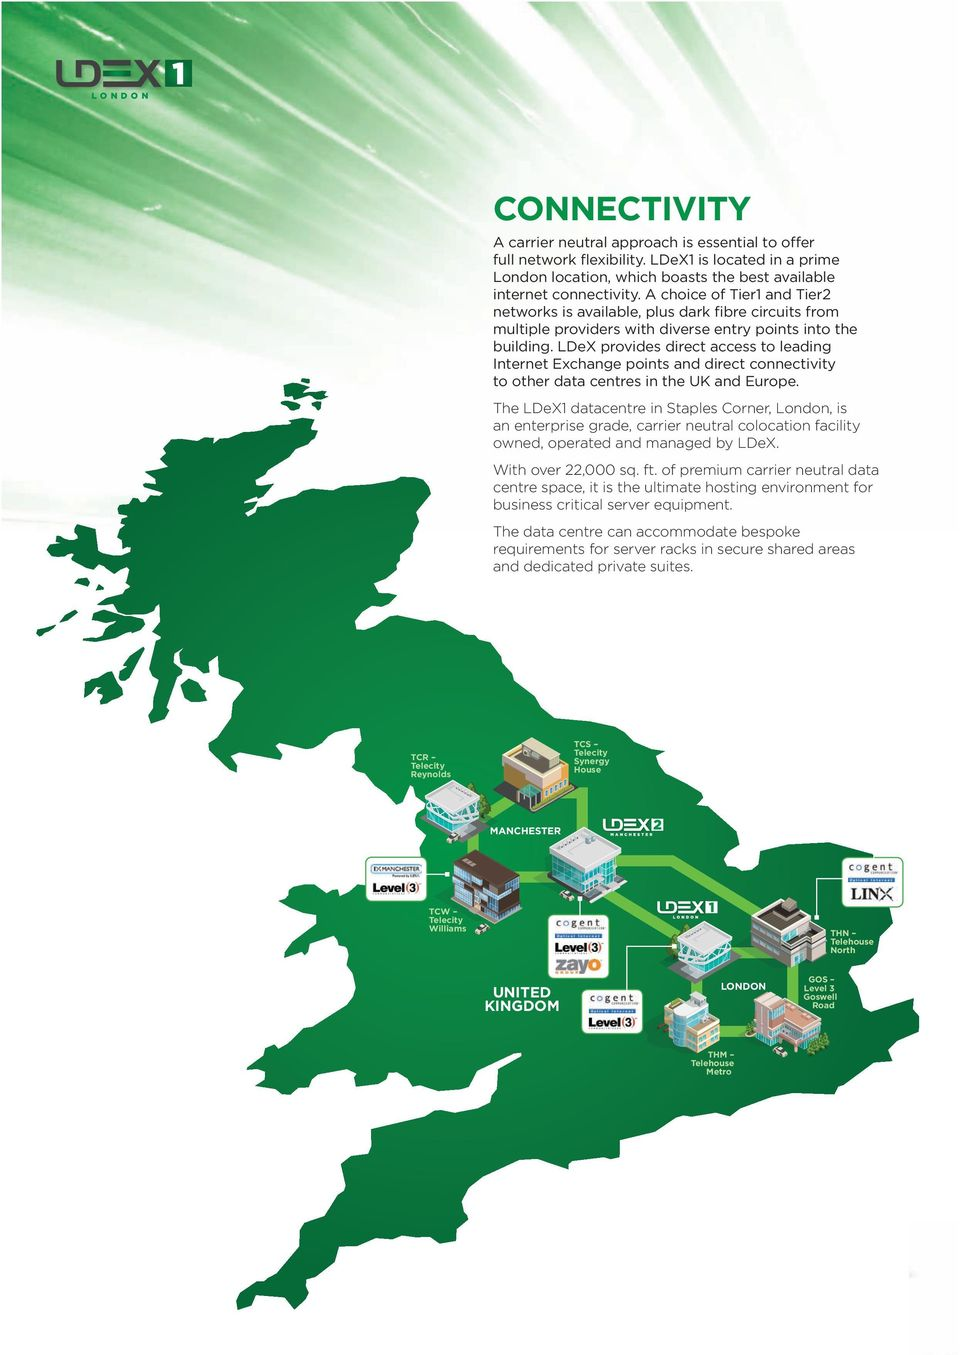 LDeX provides direct access to leading Internet Exchange points and direct connectivity to other data centres in the UK and Europe.